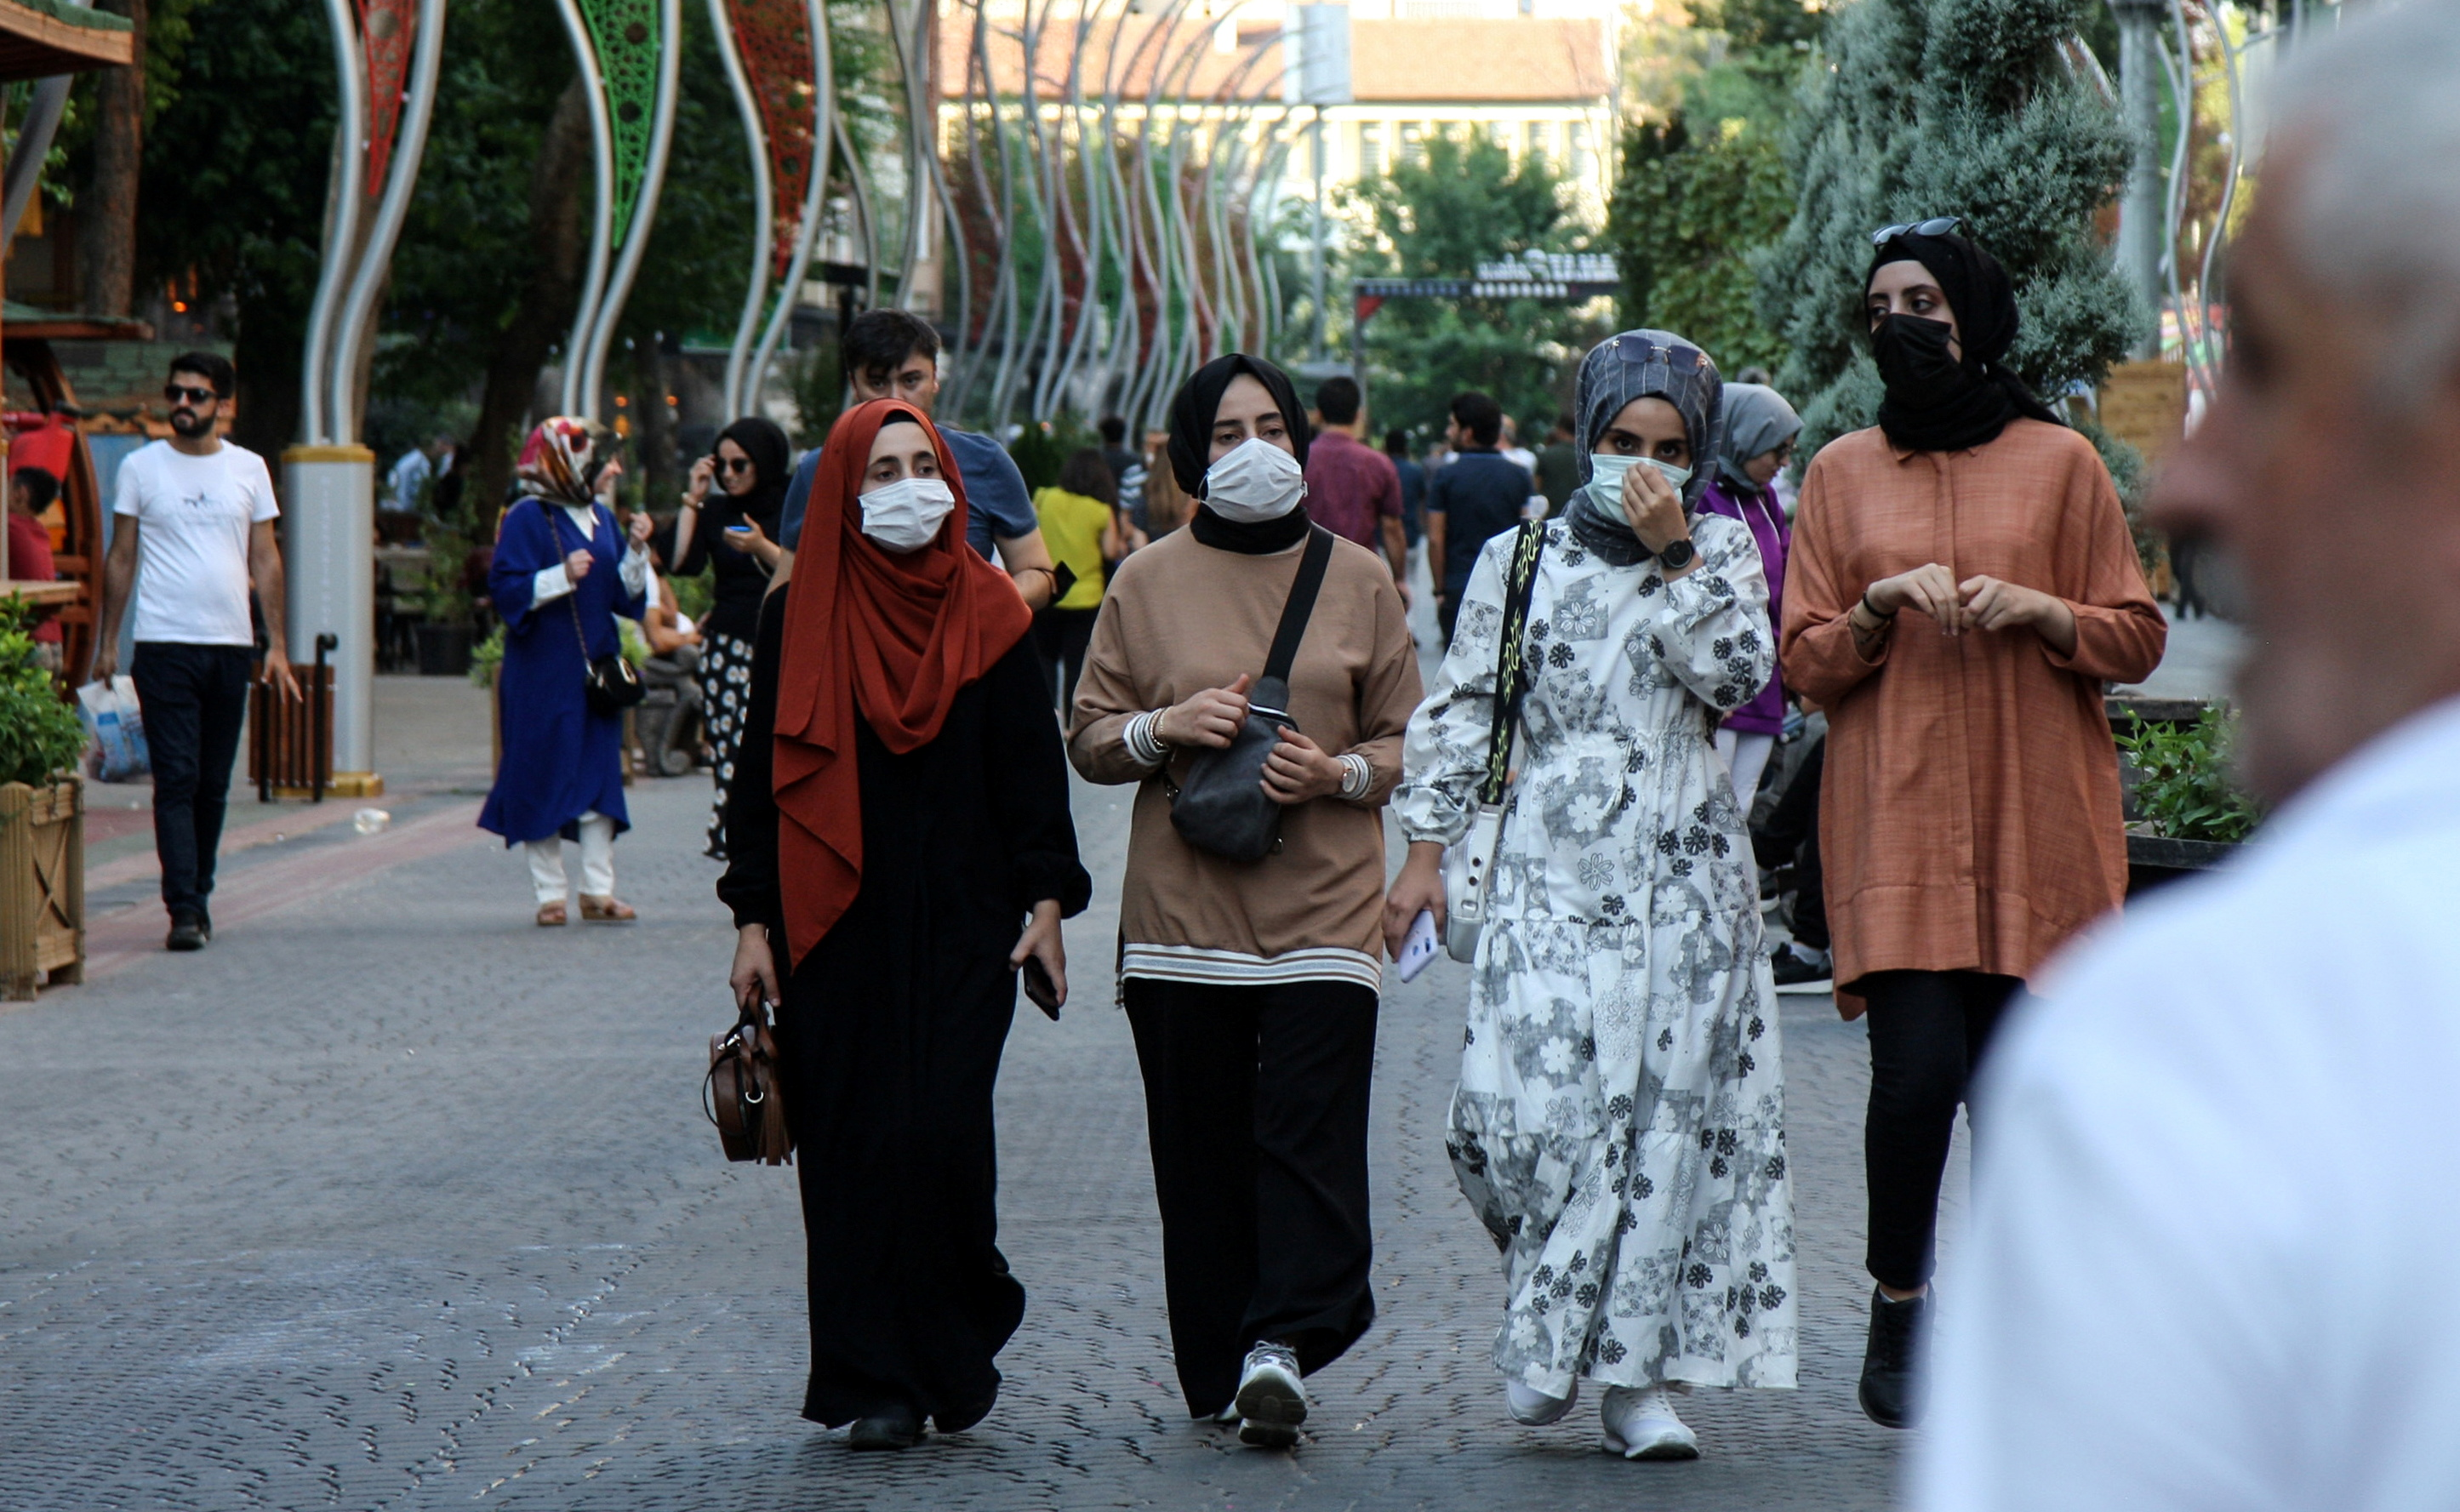 People wearing protective masks walk along a street amid a surge in COVID-19 cases in Diyarbakir, Turkey July 27, 2021. Picture taken July 27, 2021. REUTERS/Sertac Kayar